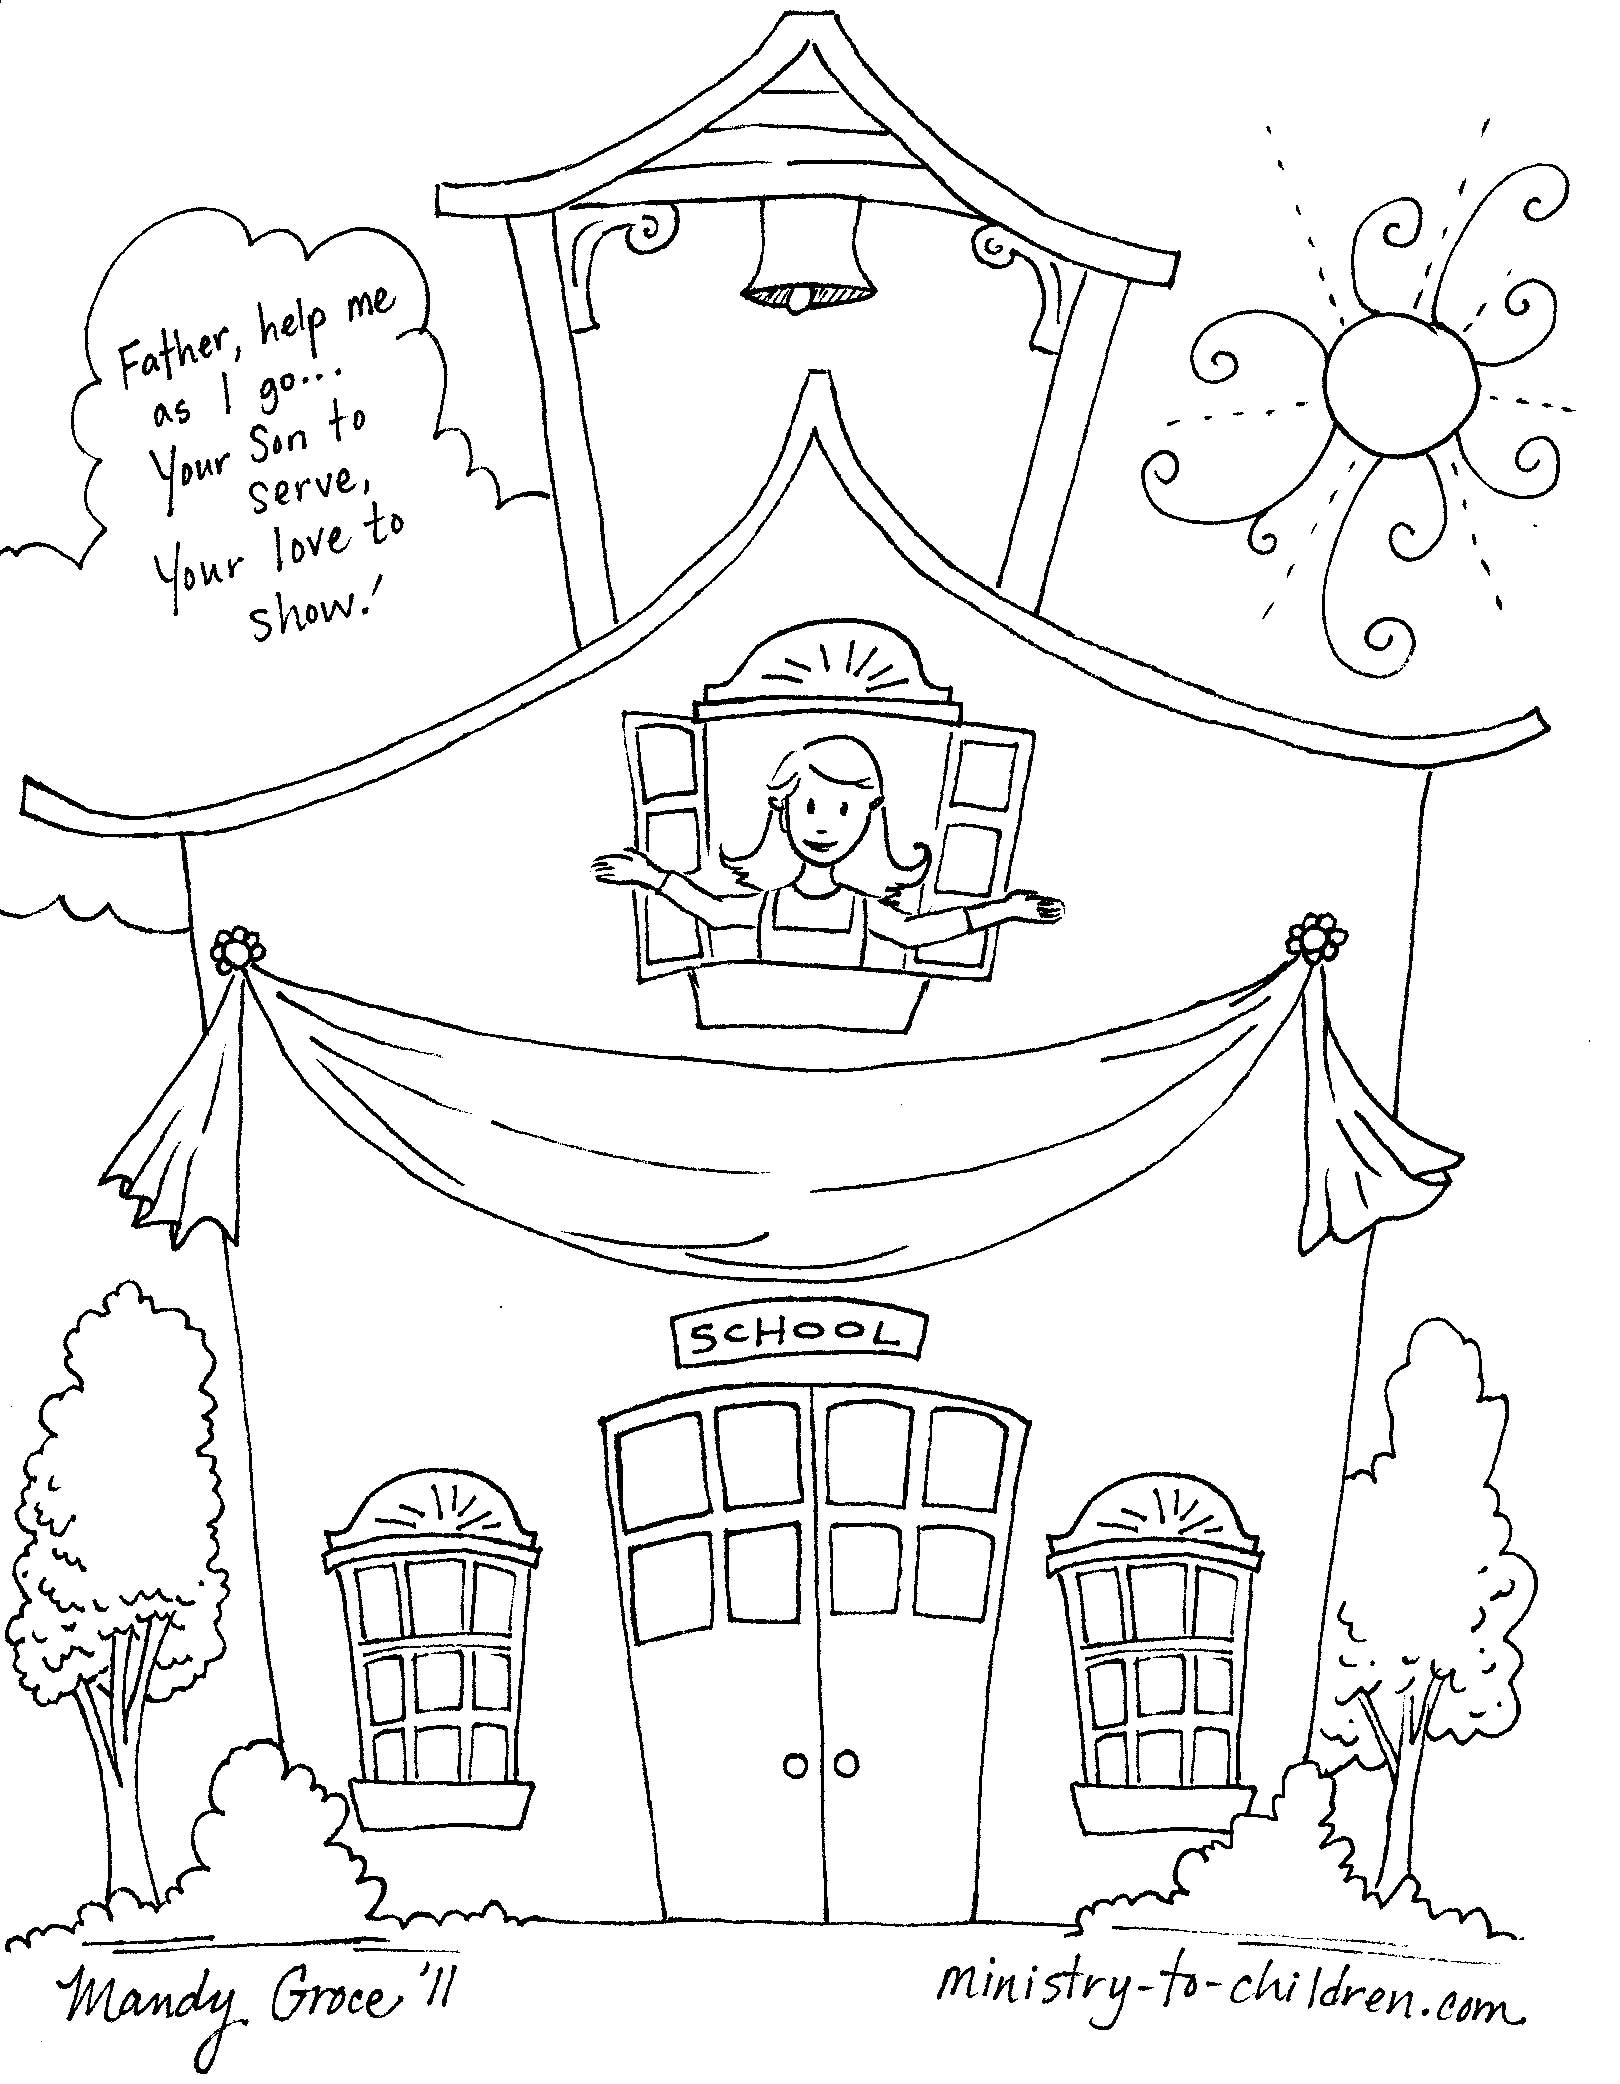 First Day Of School Coloring Pages for Kindergarten  Printable 20i - To print for your project